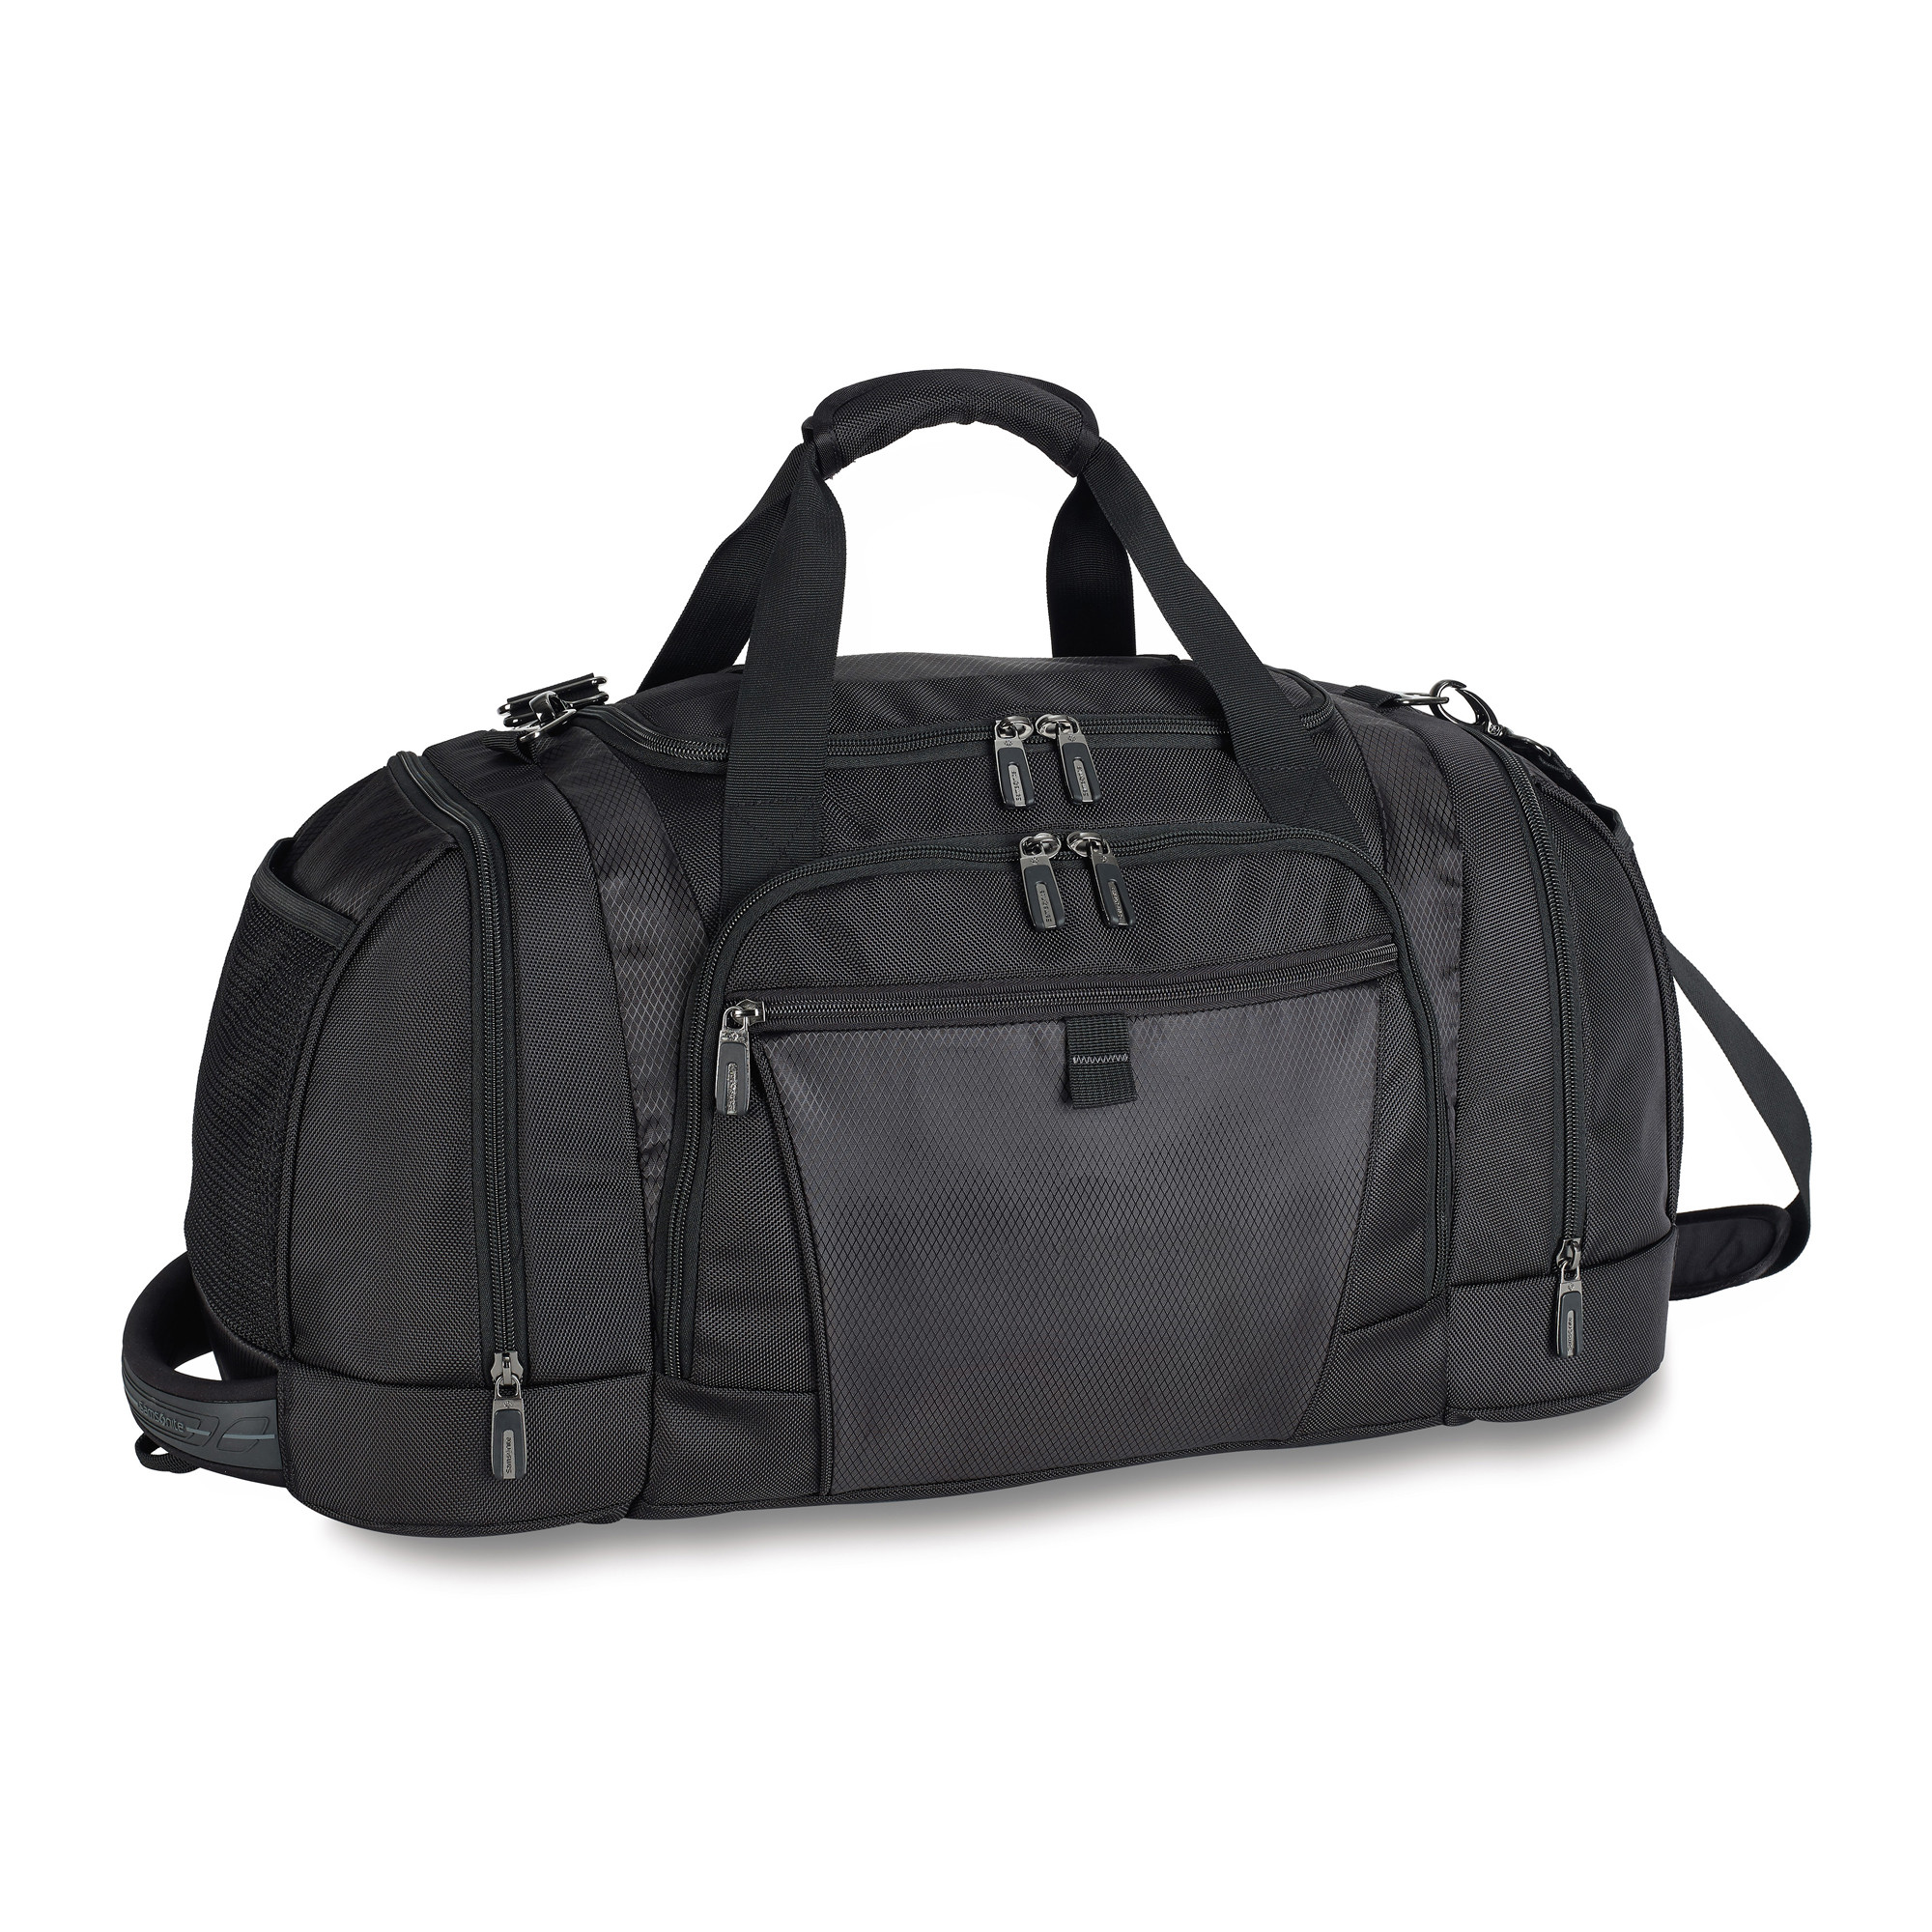 Samsonite 95042 - Tectonic 2 Sport Duffel